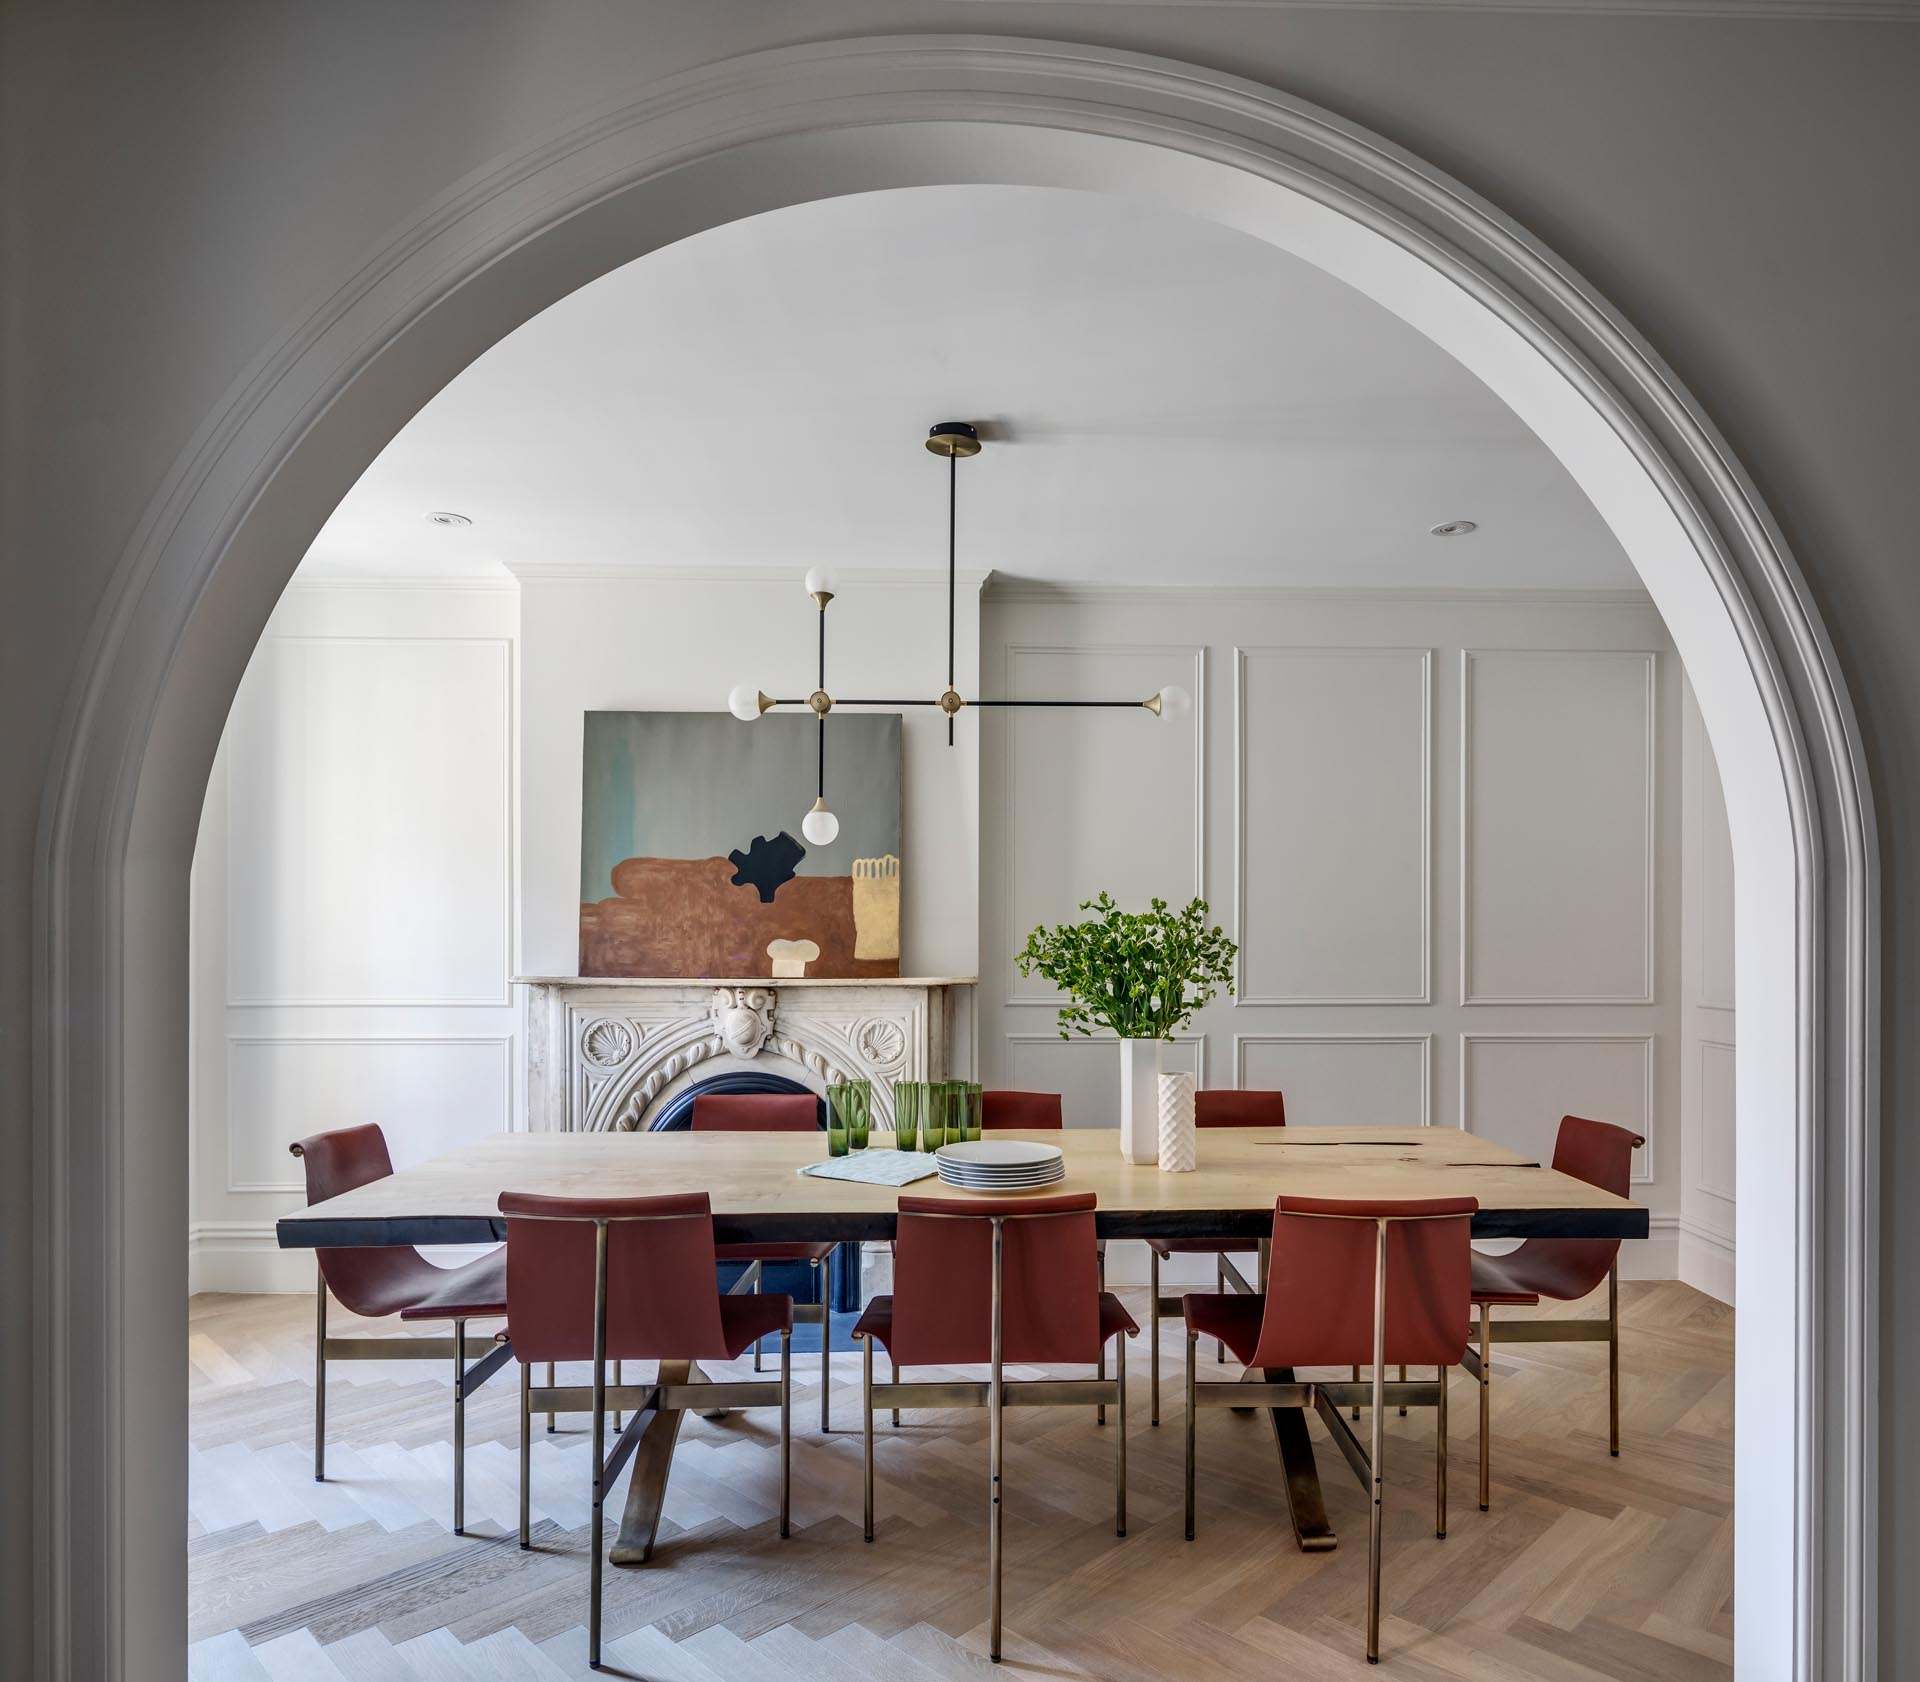 A dining room with a large wood table, an arched doorway, and a fireplace.